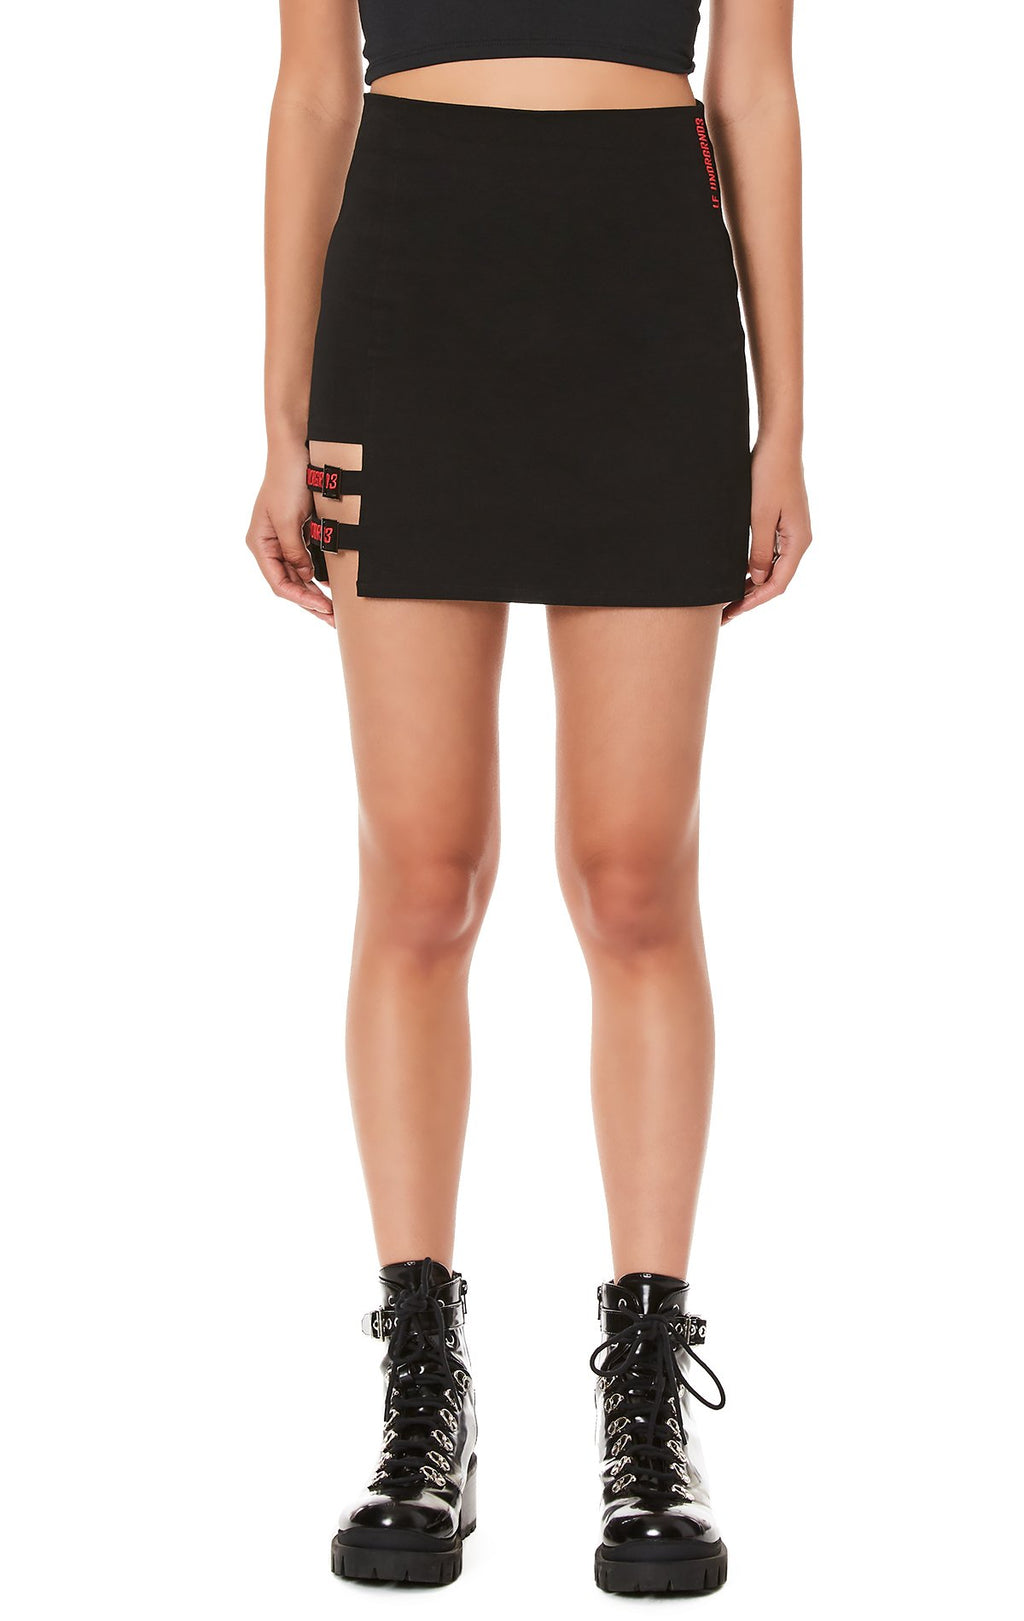 FITTED SKIRT WITH SUSPENDER STRIP DETAIL FRONT